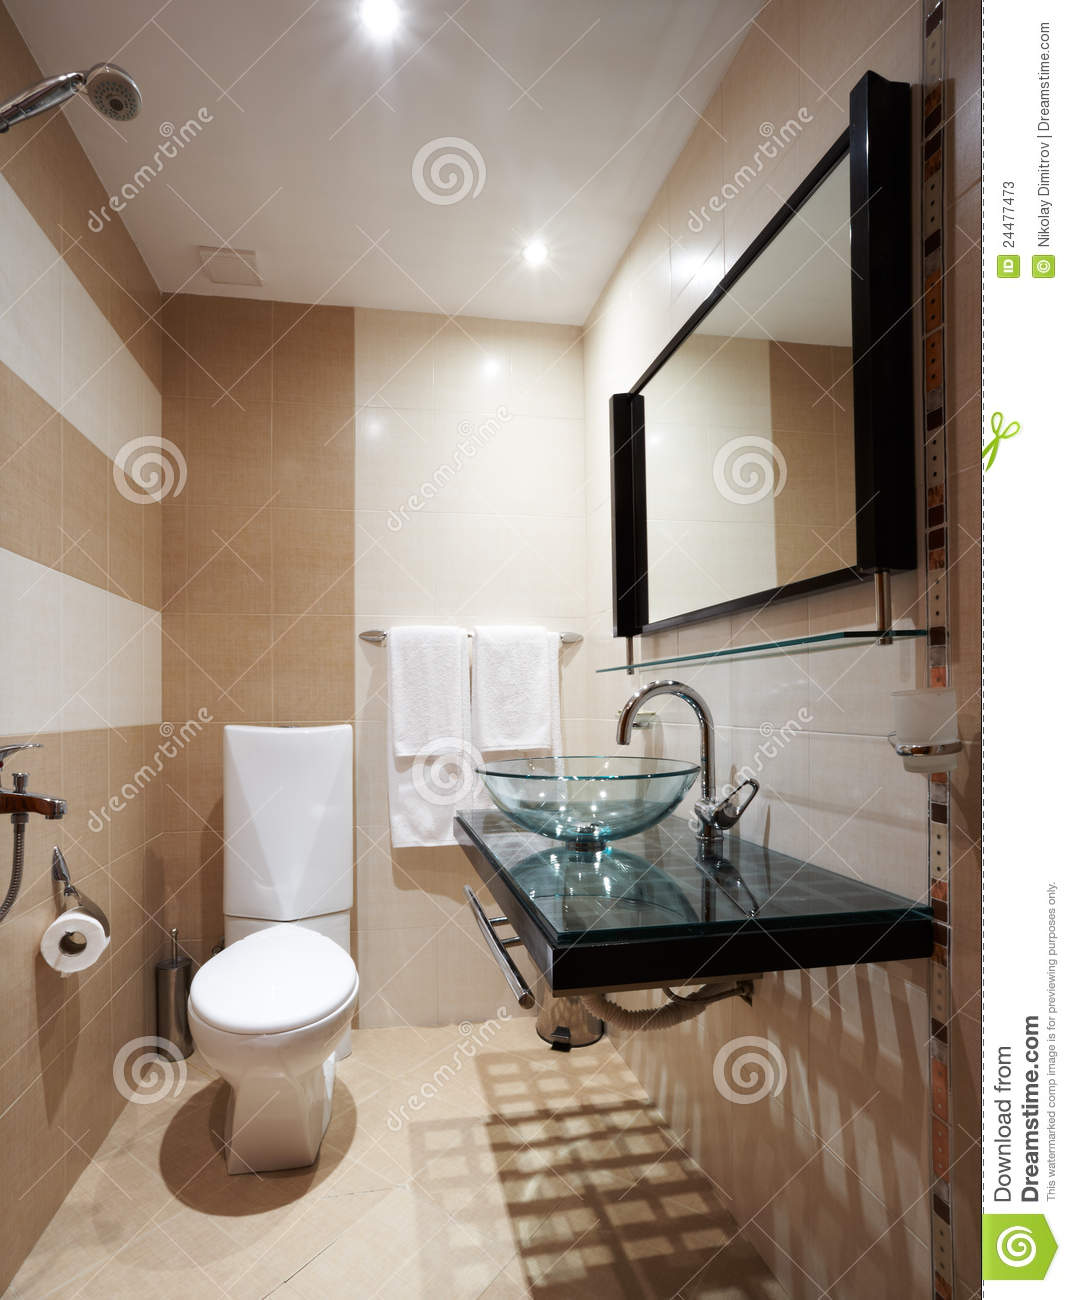 Cuarto De Baño Moderno Fotos:Modern Small Bathroom Brown